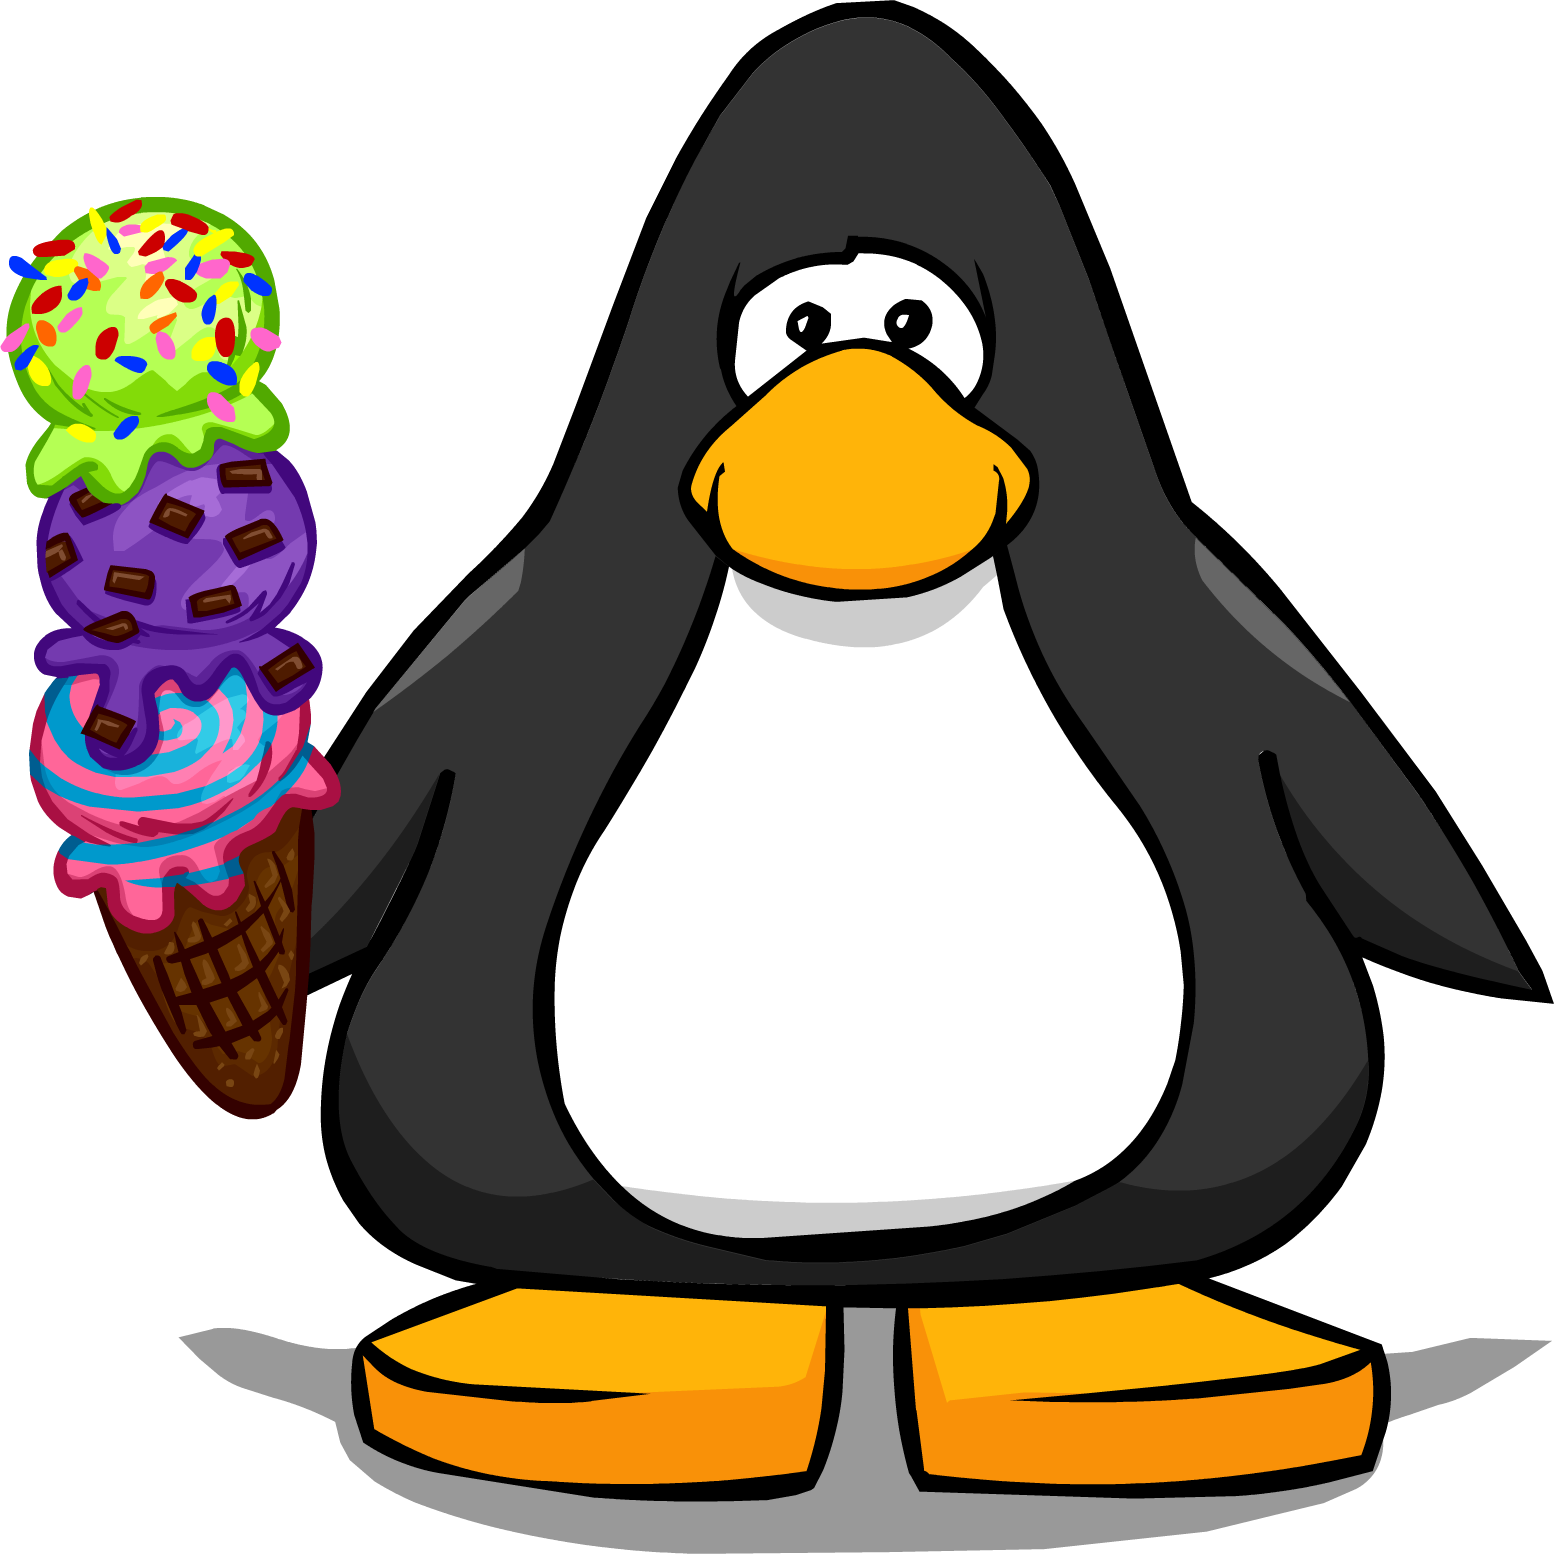 Skis clipart penguin. Every flavor ice cream